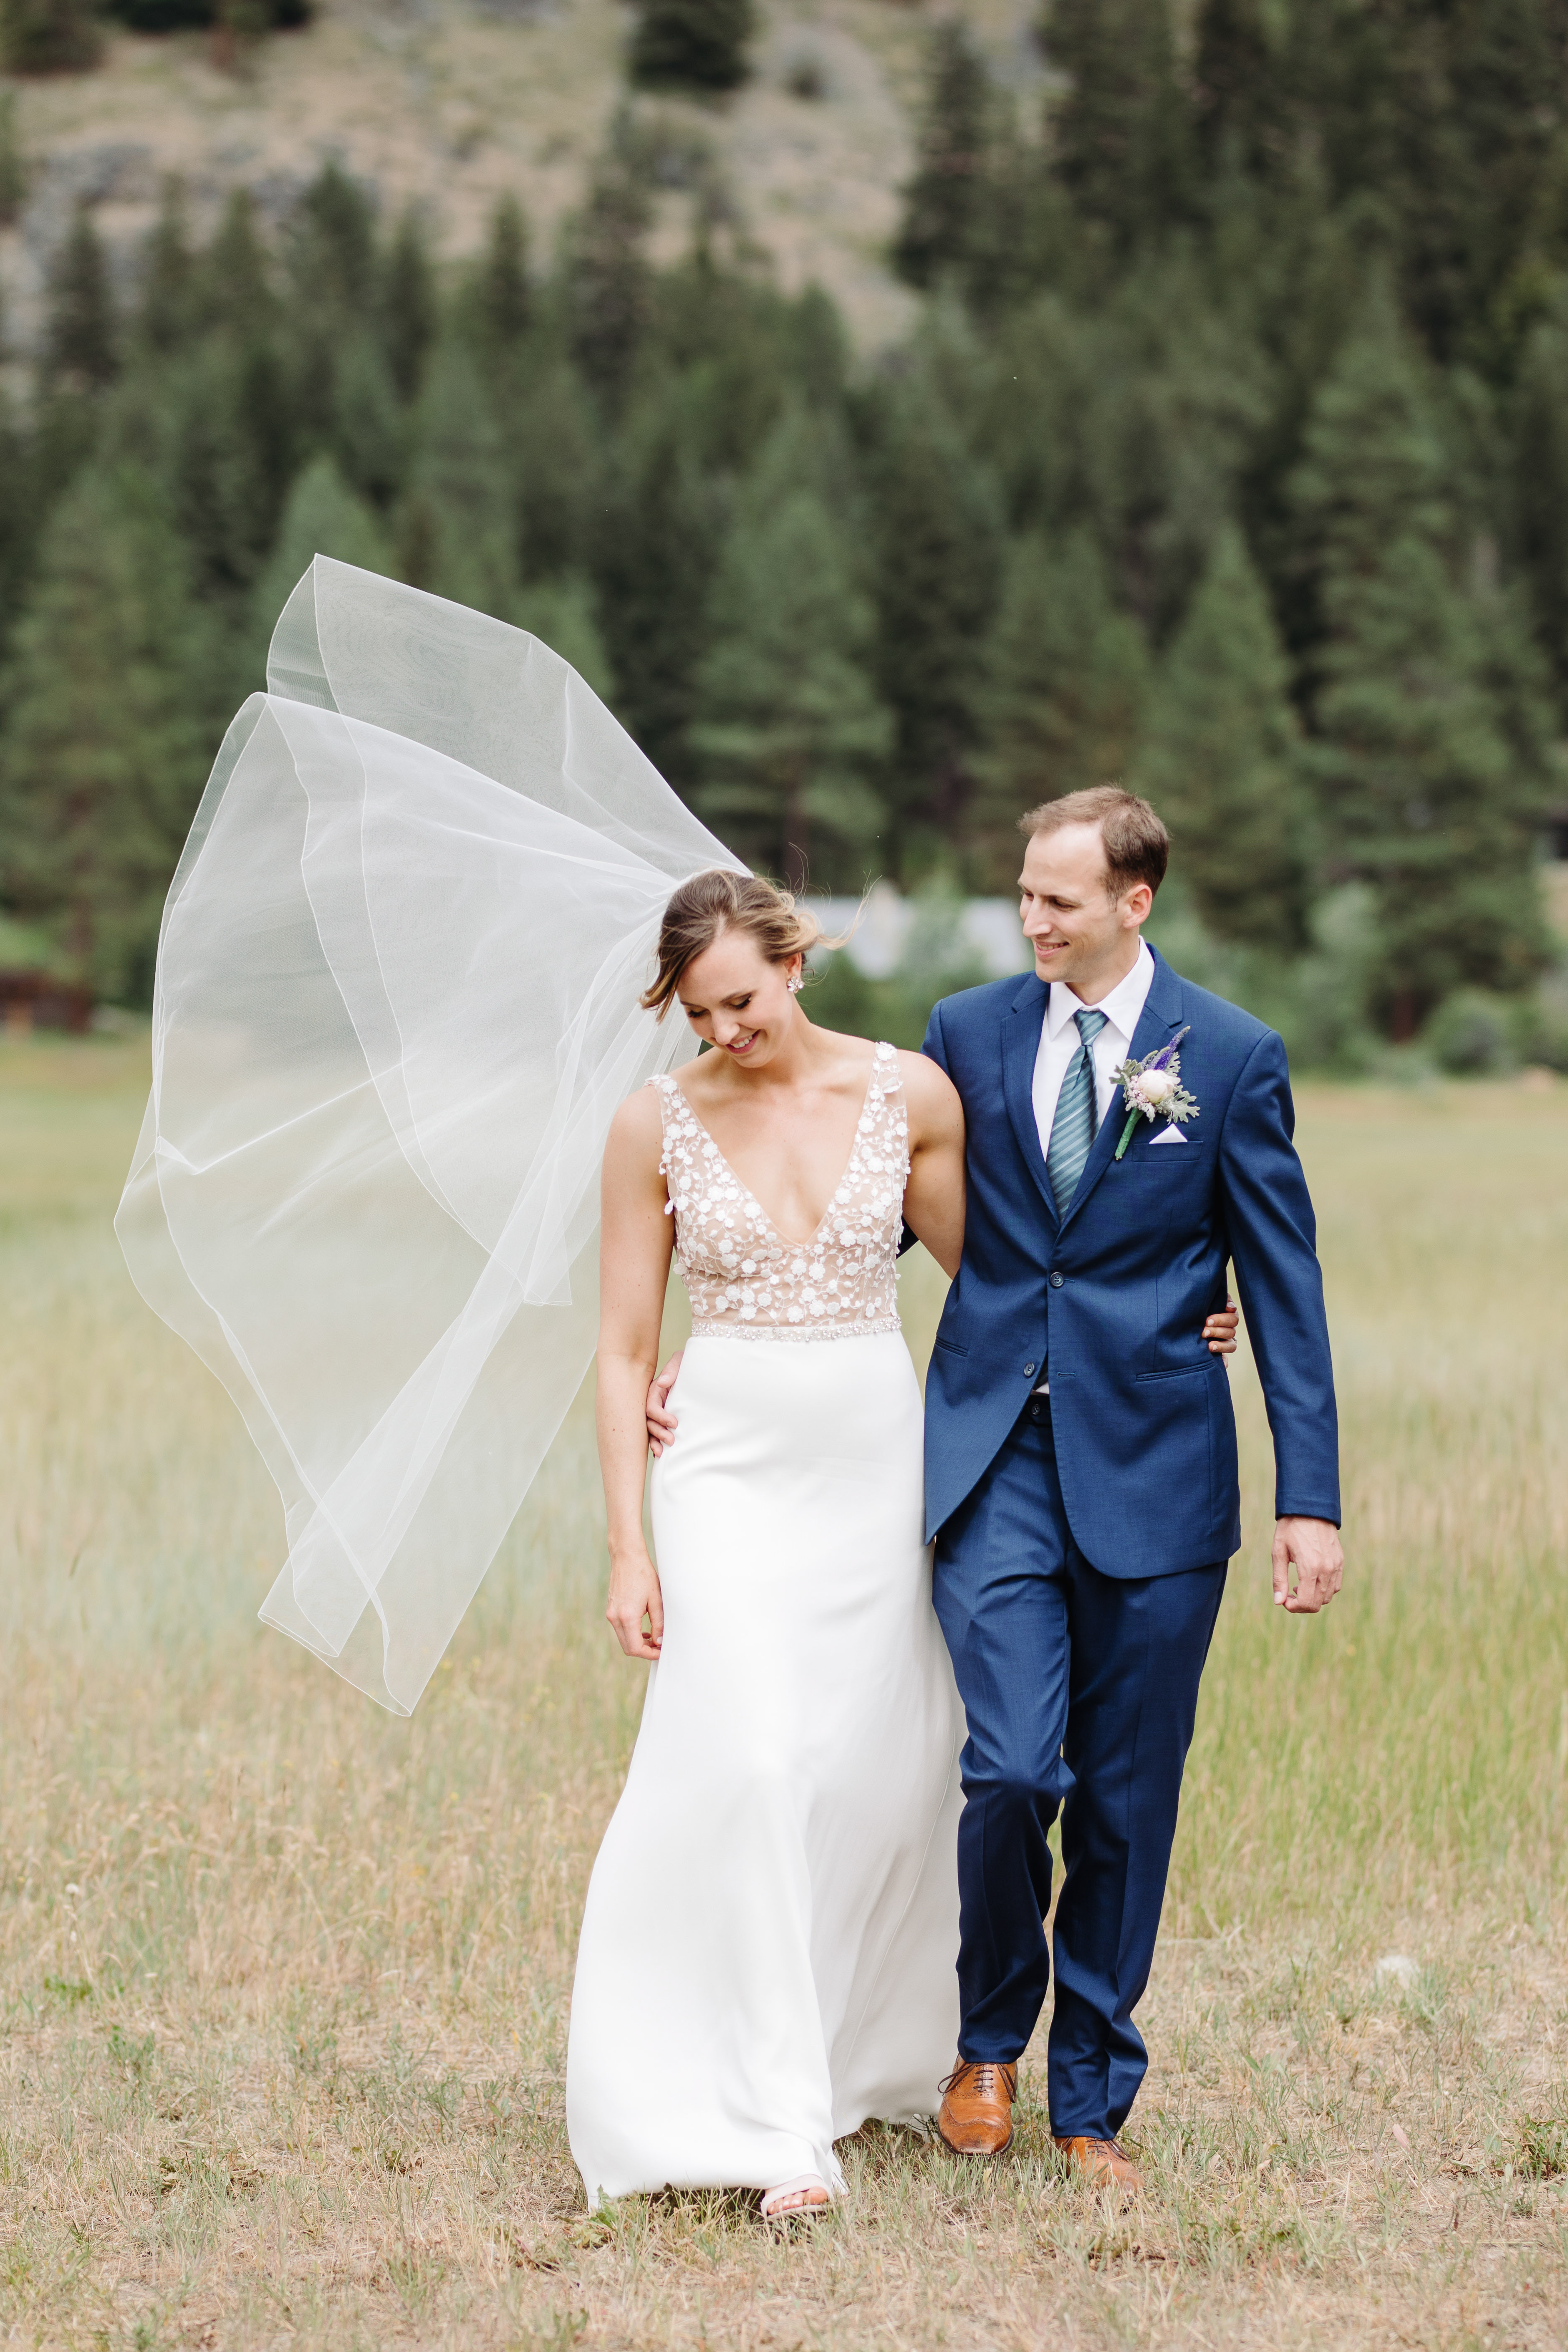 Bride and groom stroll through fields - photo by Cameron Zegers Photography